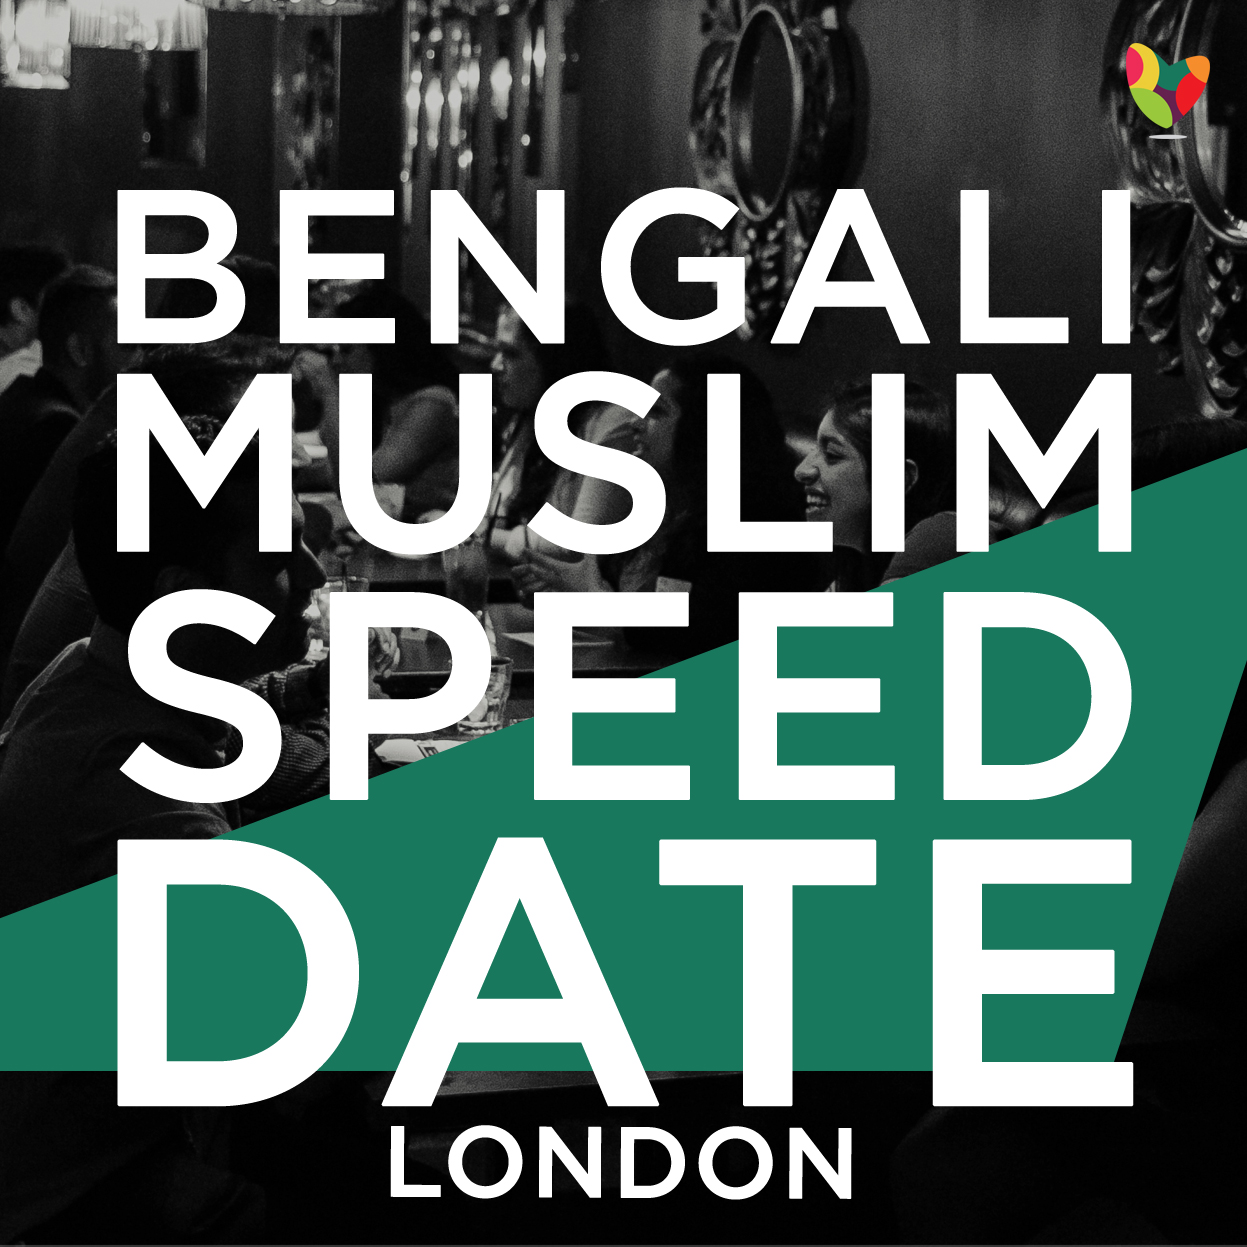 Muslim dating events london